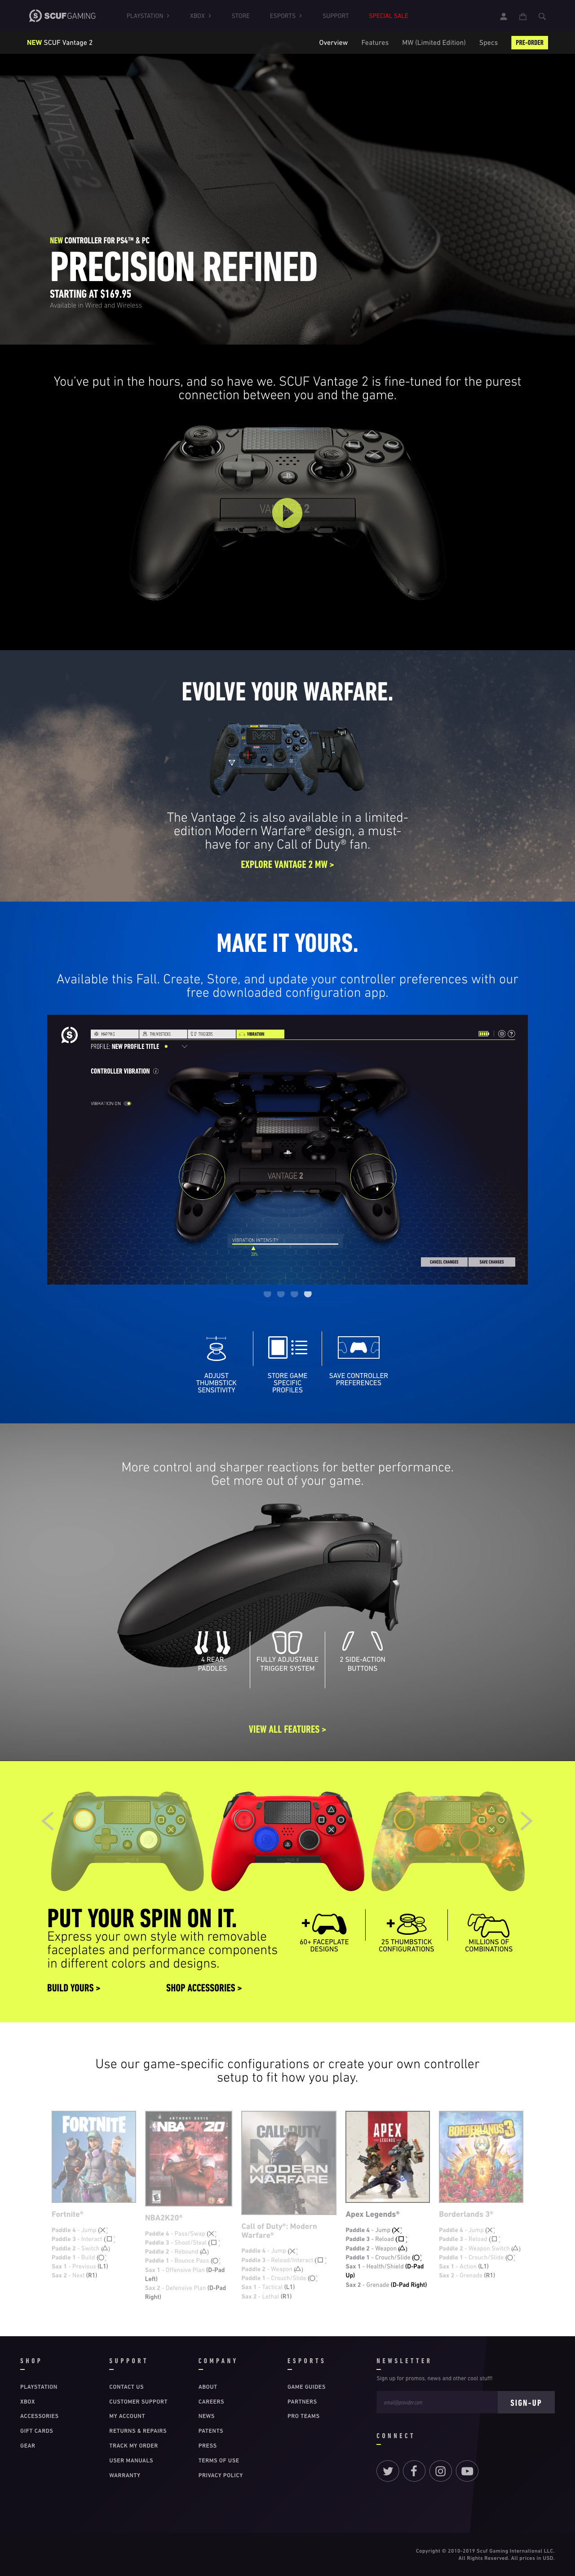 Screenshot_2019-10-01 Scuf Vantage 2 Controller Overview - PS4 and PC Scuf Gaming(1).jpg